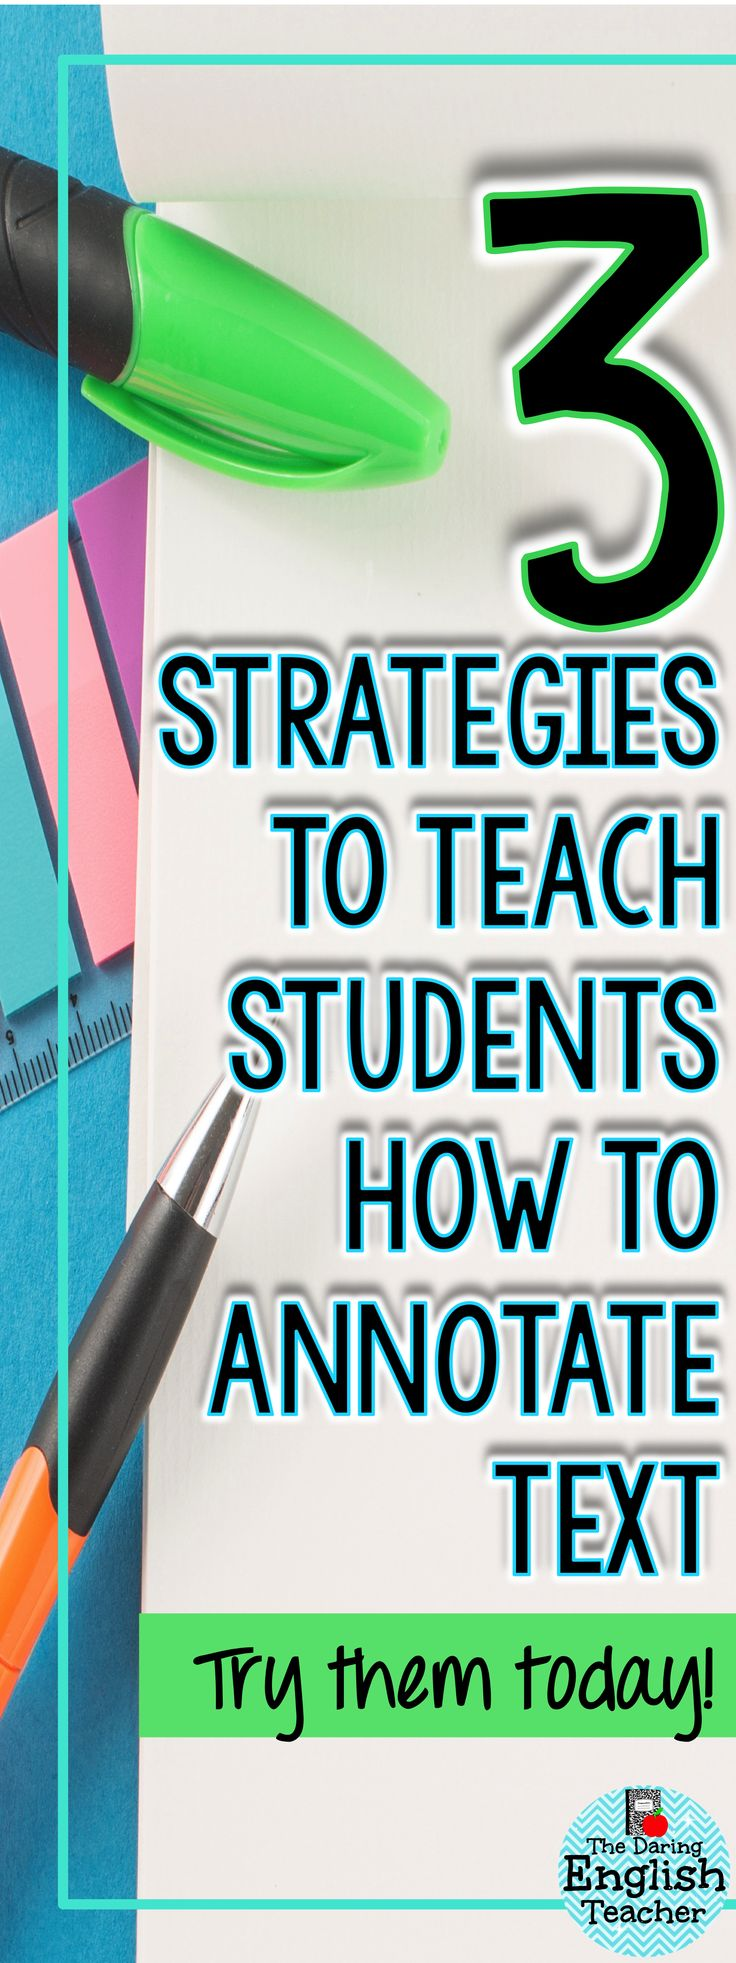 Three strategies to implement in your classroom when teaching students how to annotate text. Ideal for middle school and high school students, these strategies will help build confidence.